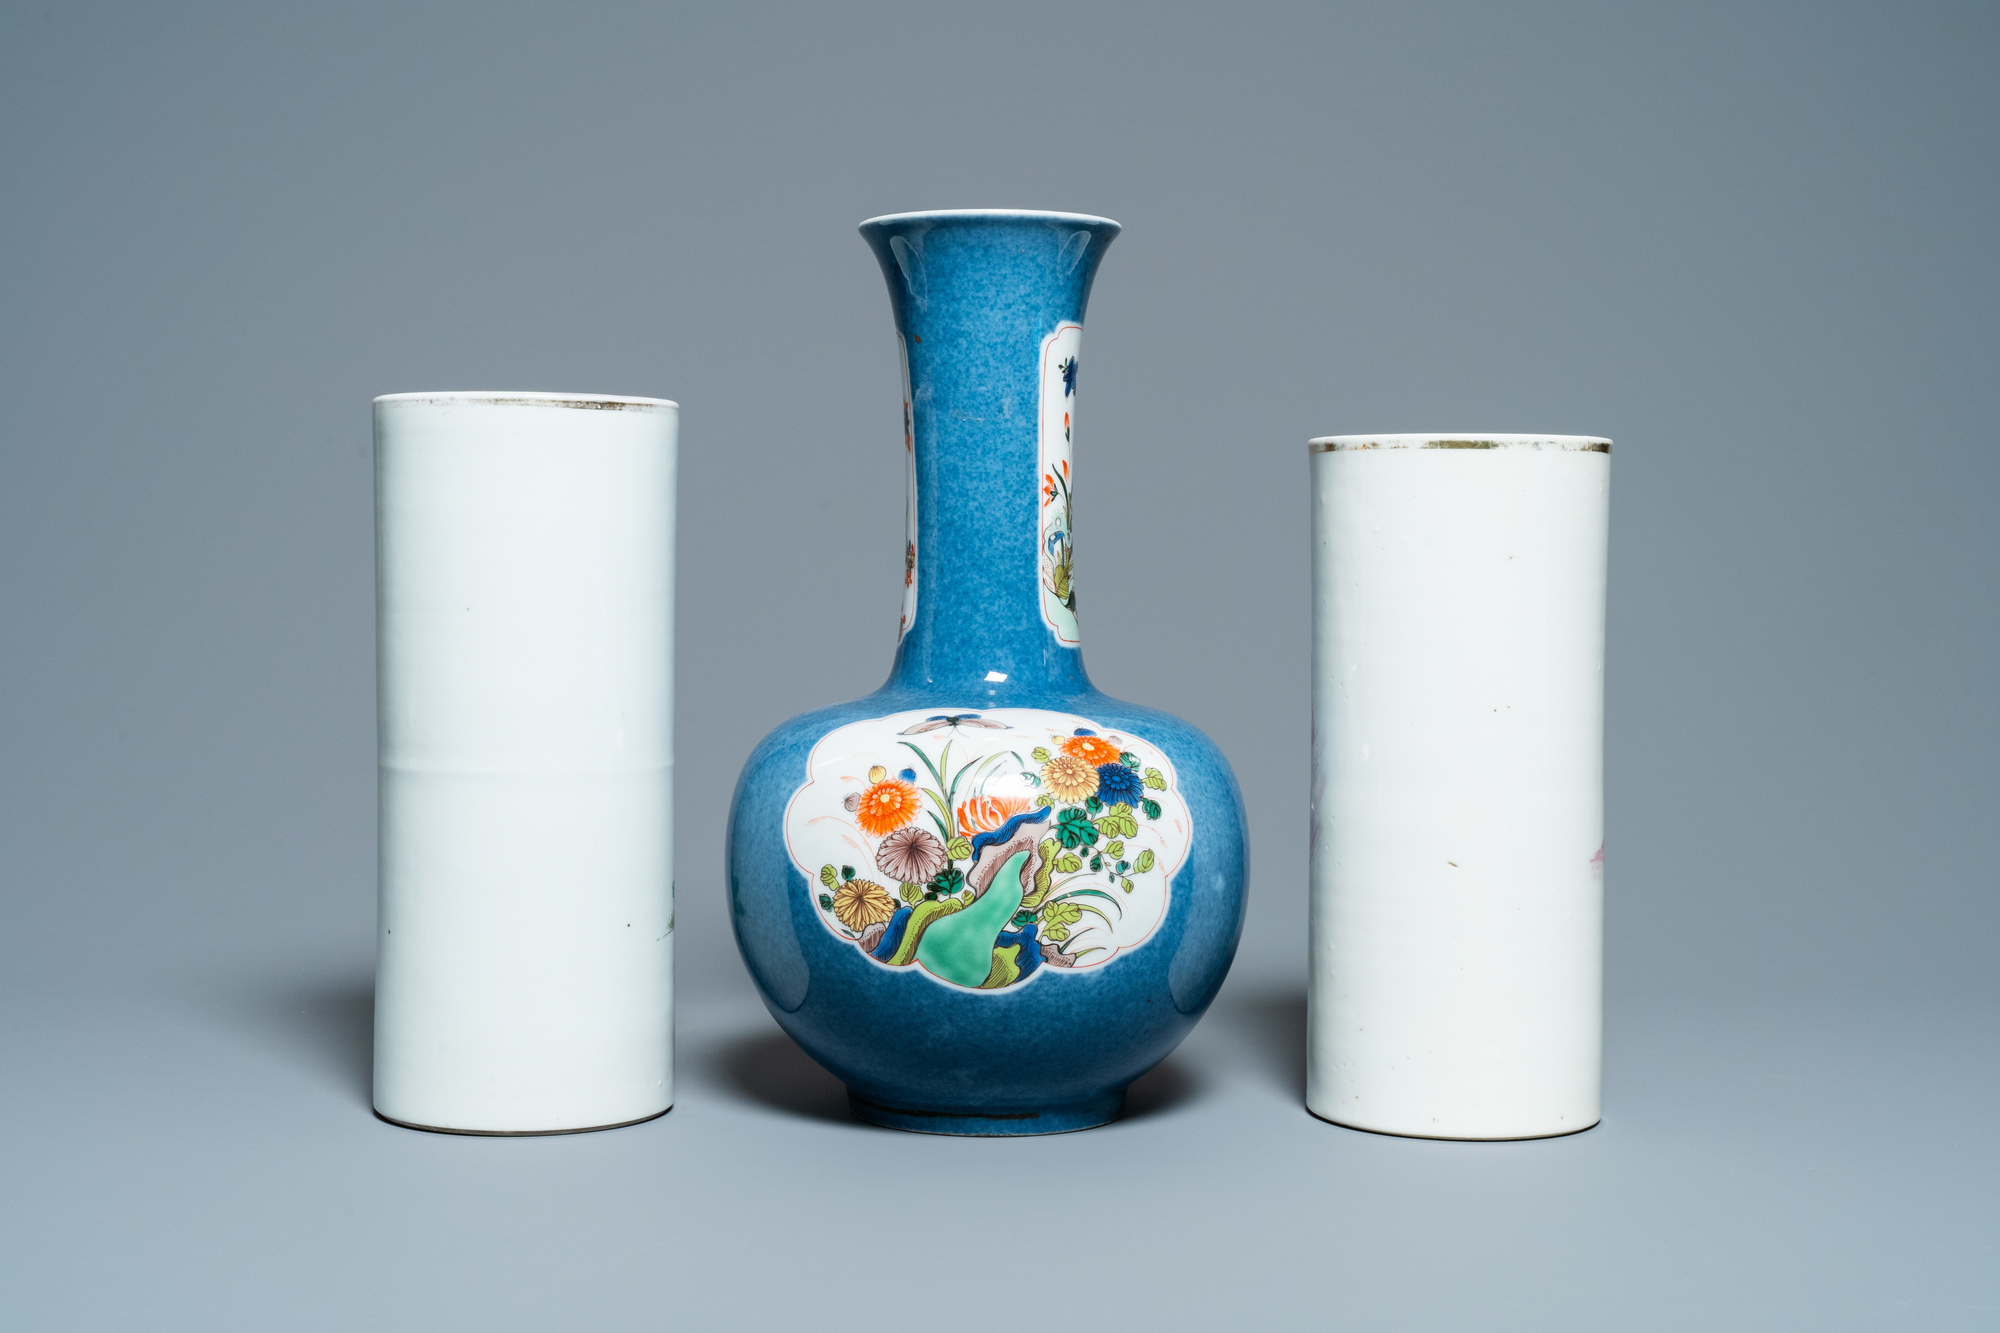 Six Chinese famille rose and verte vases, 19/20th C. - Image 10 of 13